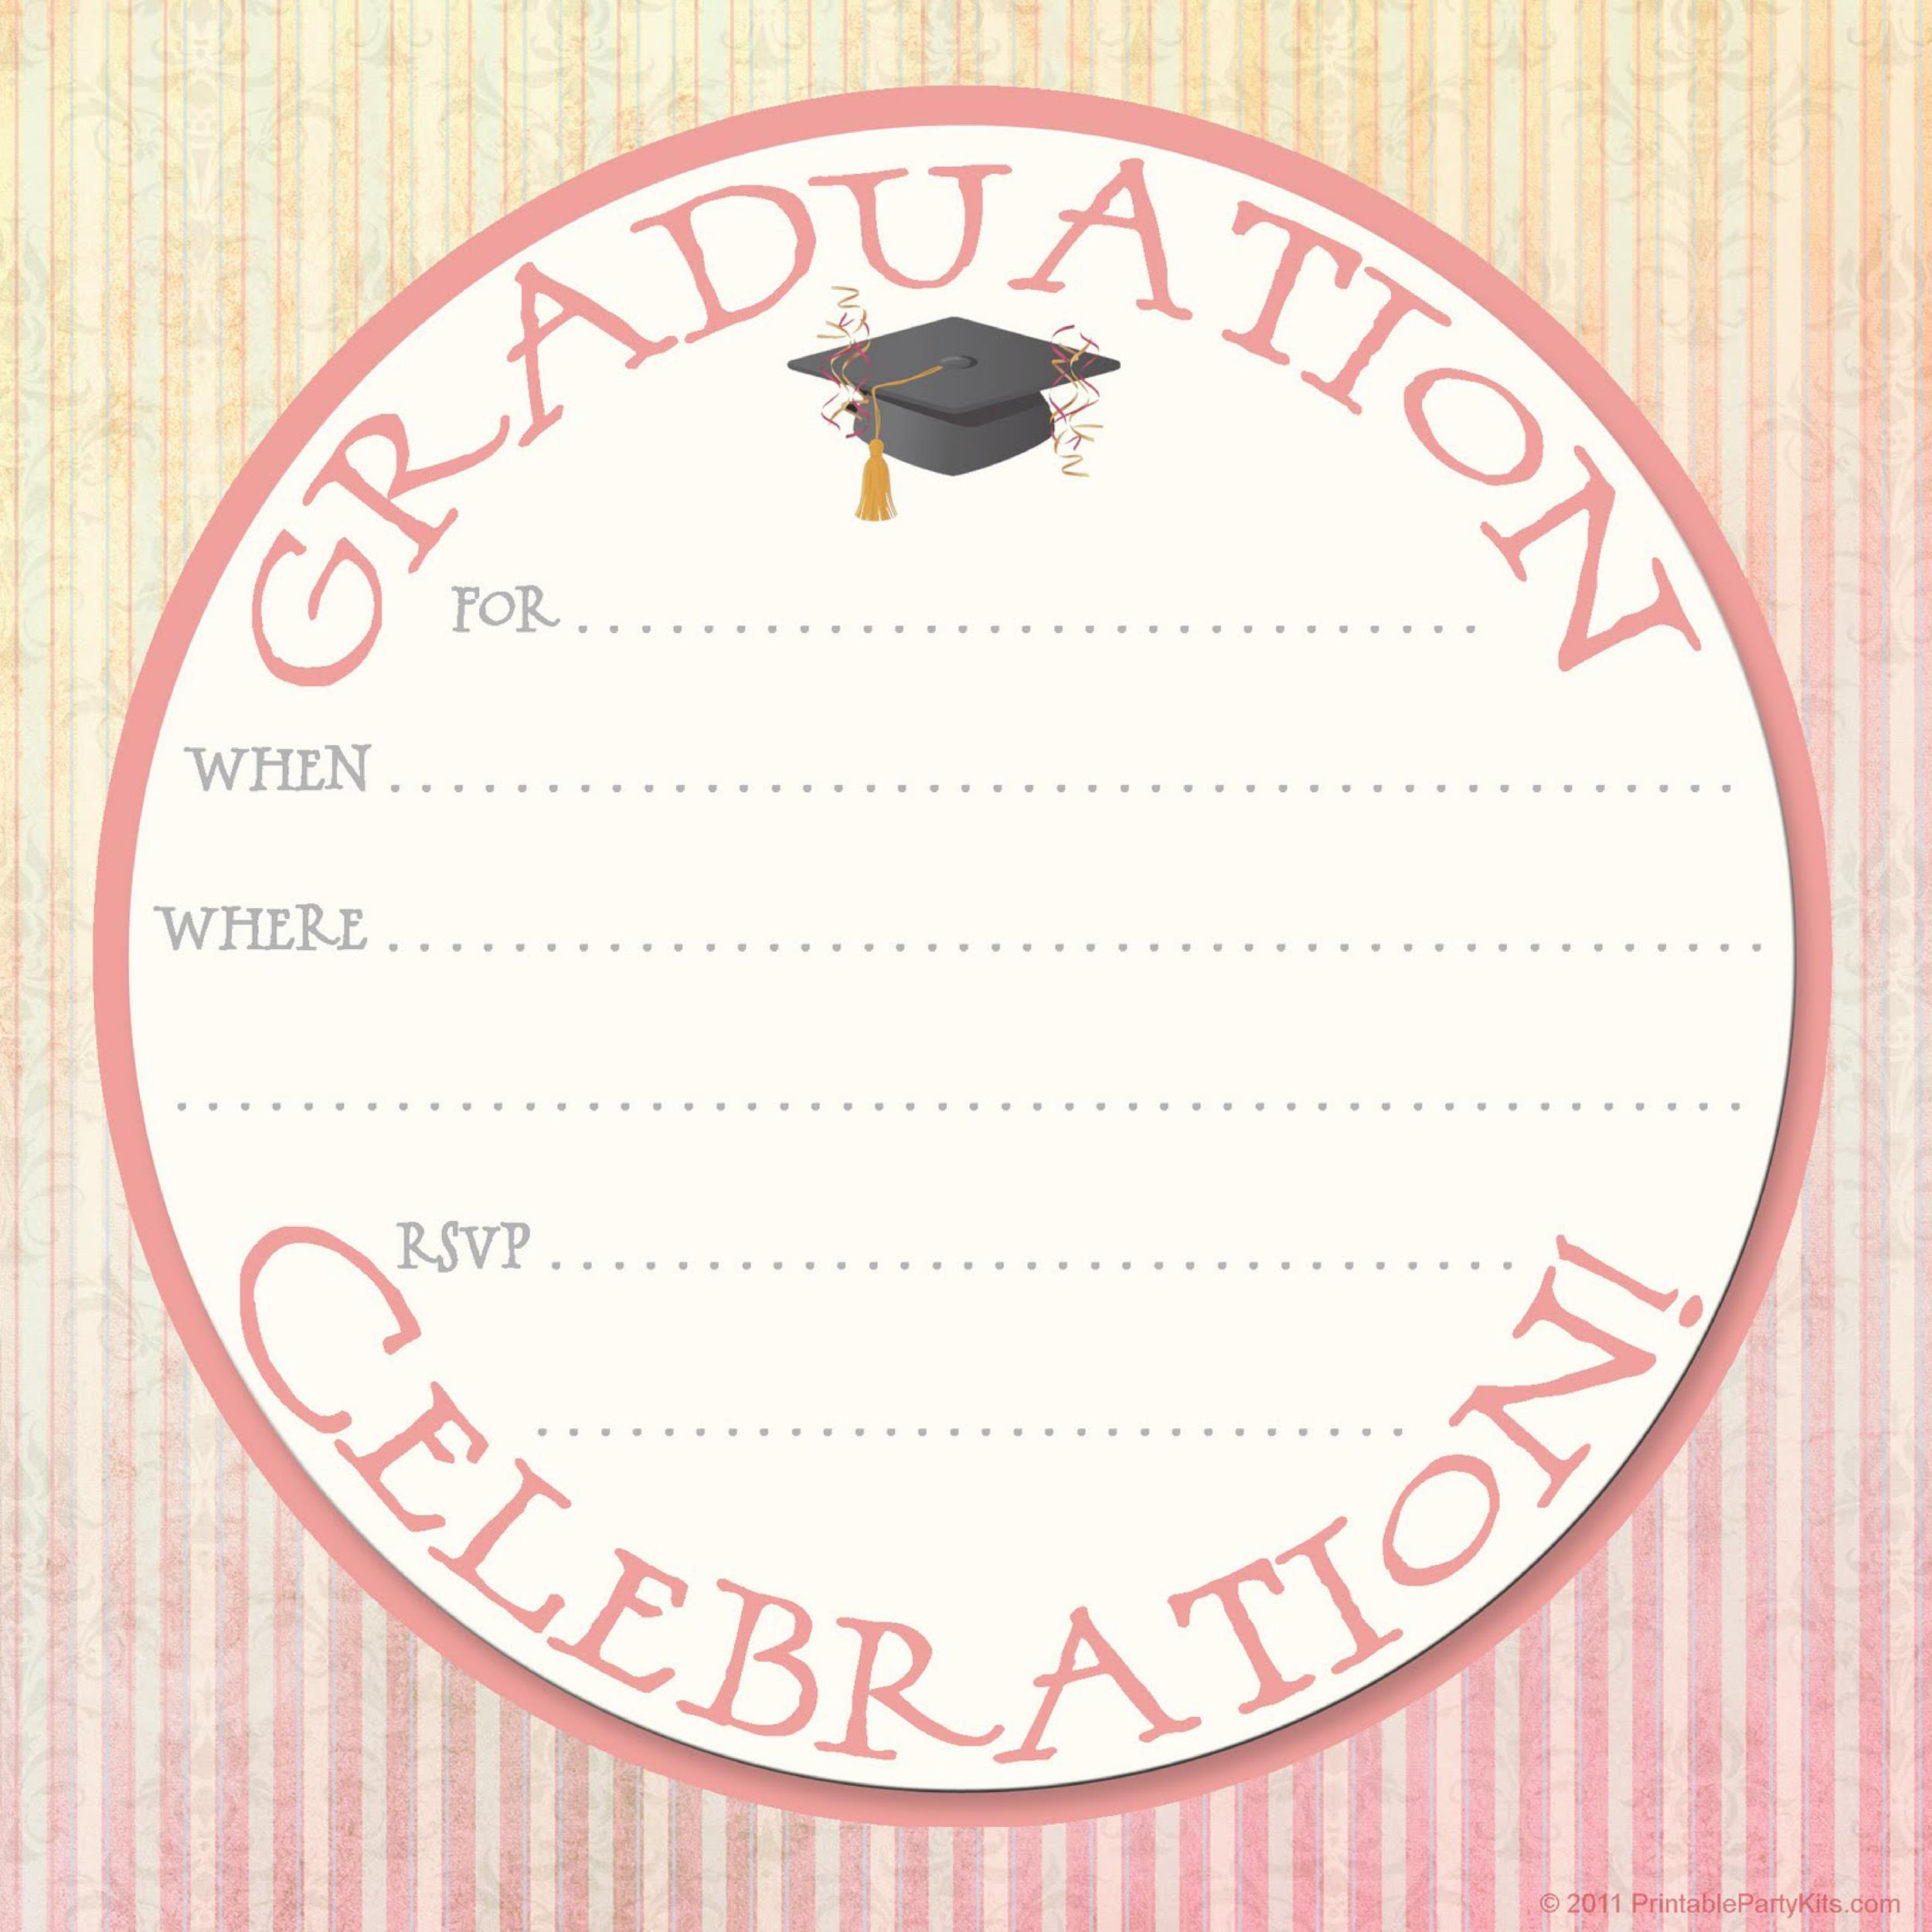 FREE Graduation Invitation Templates Template Lab - Party invitation template: grad party invites templates